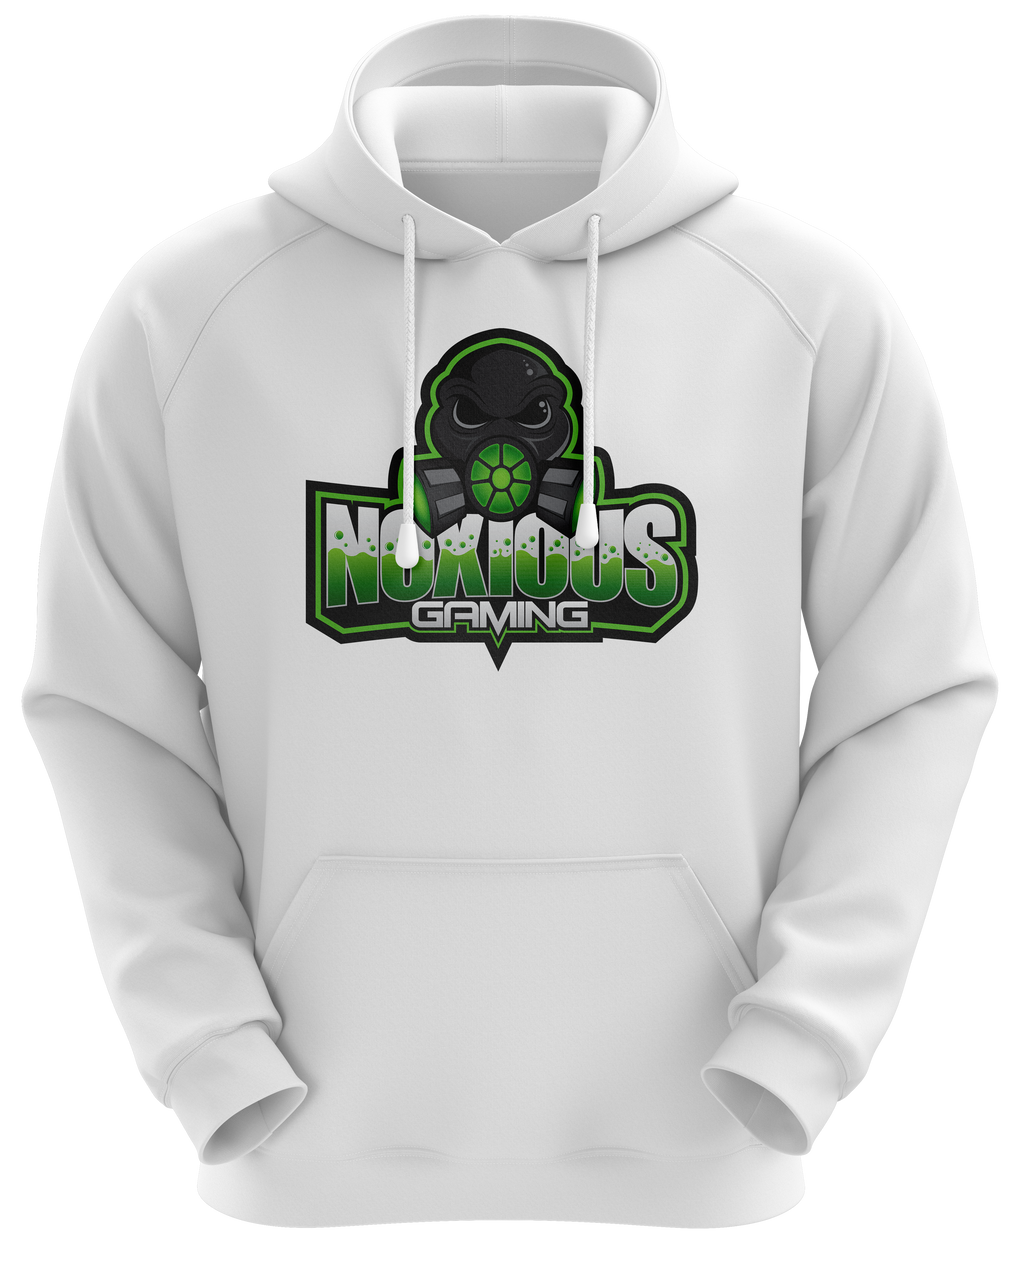 Noxious Gaming Hoodie (2 Color Options)